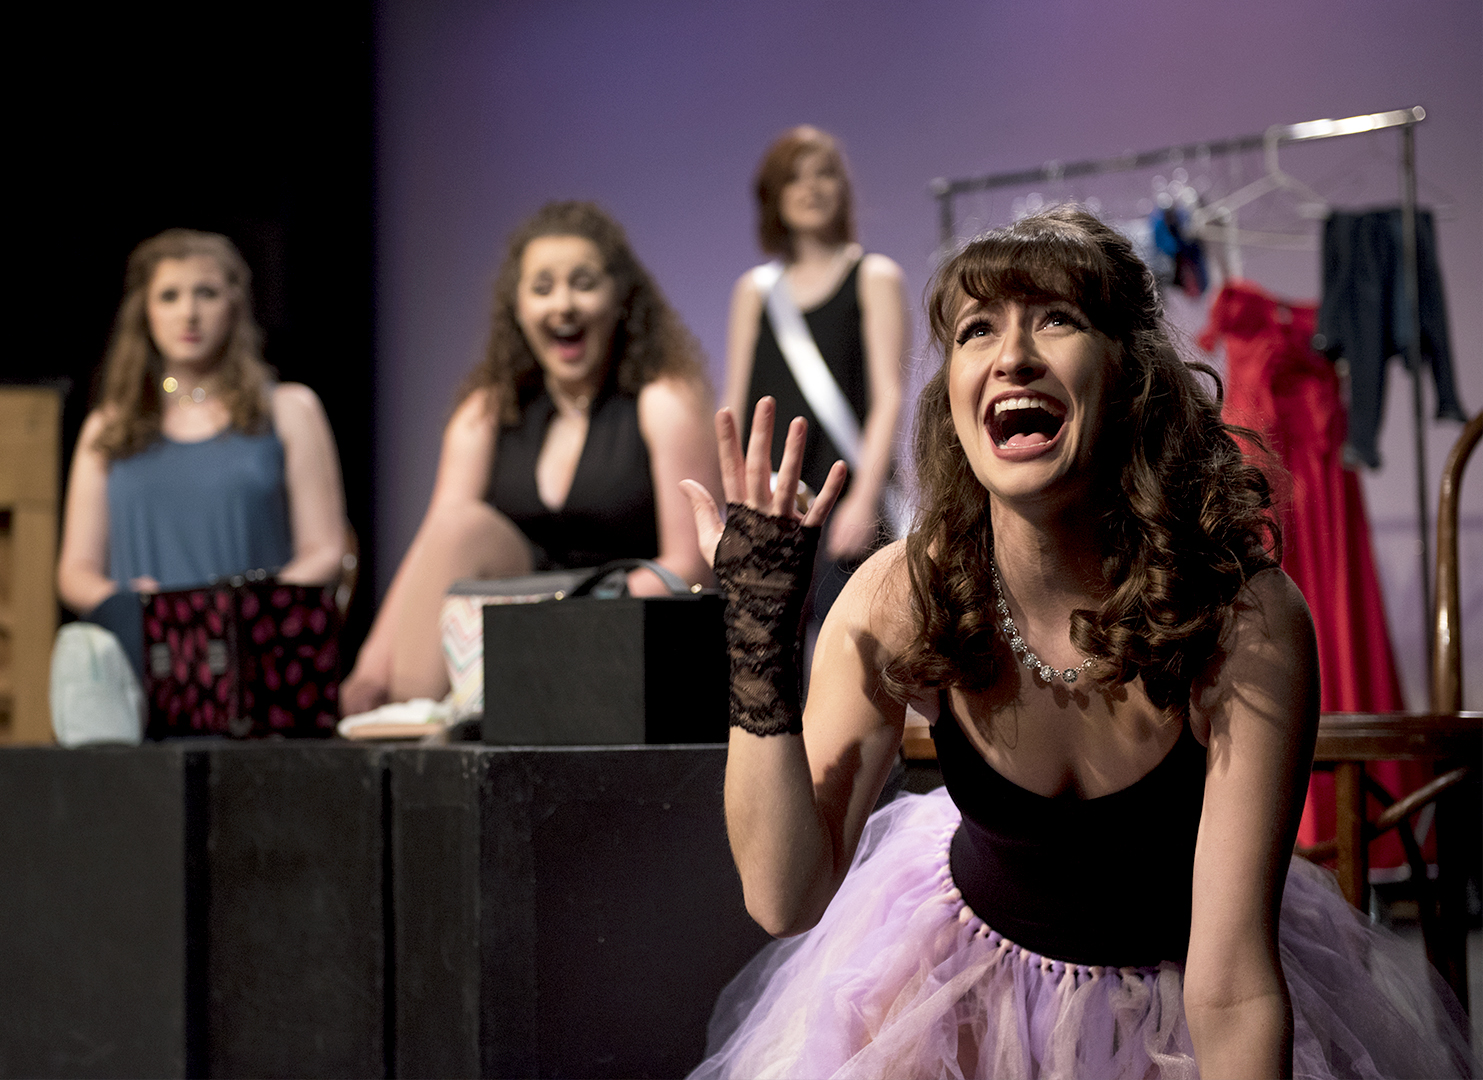 Hannah Beth Turner (right) rehearses a short scene during photo call for